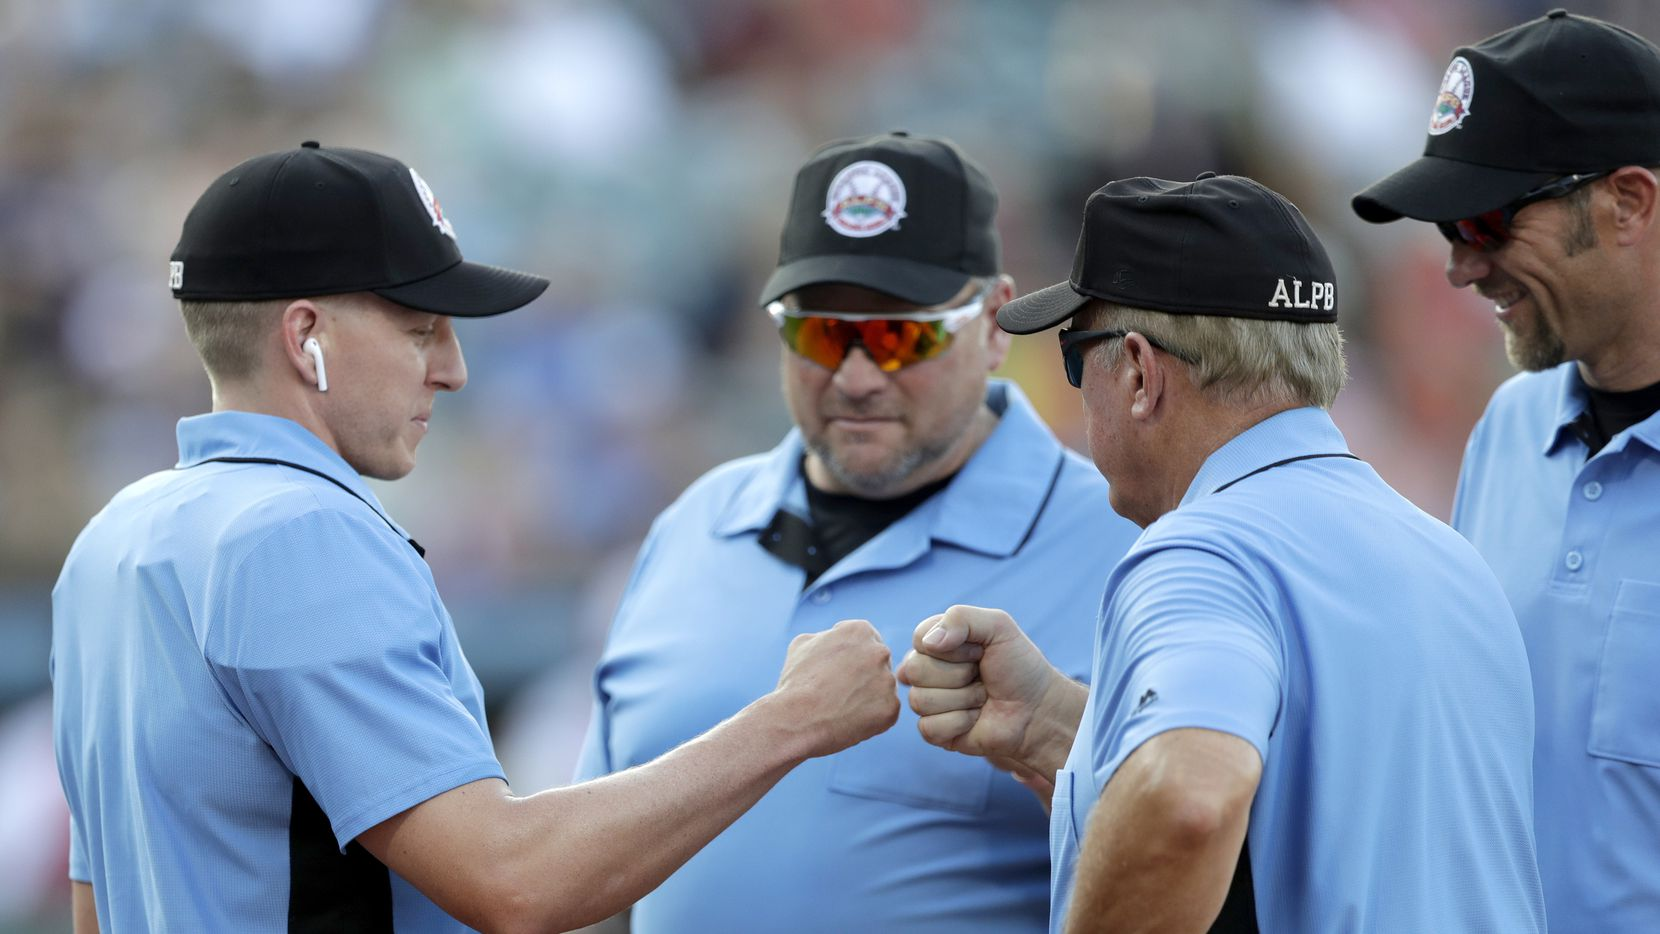 FILE —  Under MLB's new COVID-19 safety rules and guidelines there will be no high-fives, no fist bumps, no hugs, no spitting, no smokeless tobacco, and no sunflower seeds. (AP Photo/Julio Cortez)